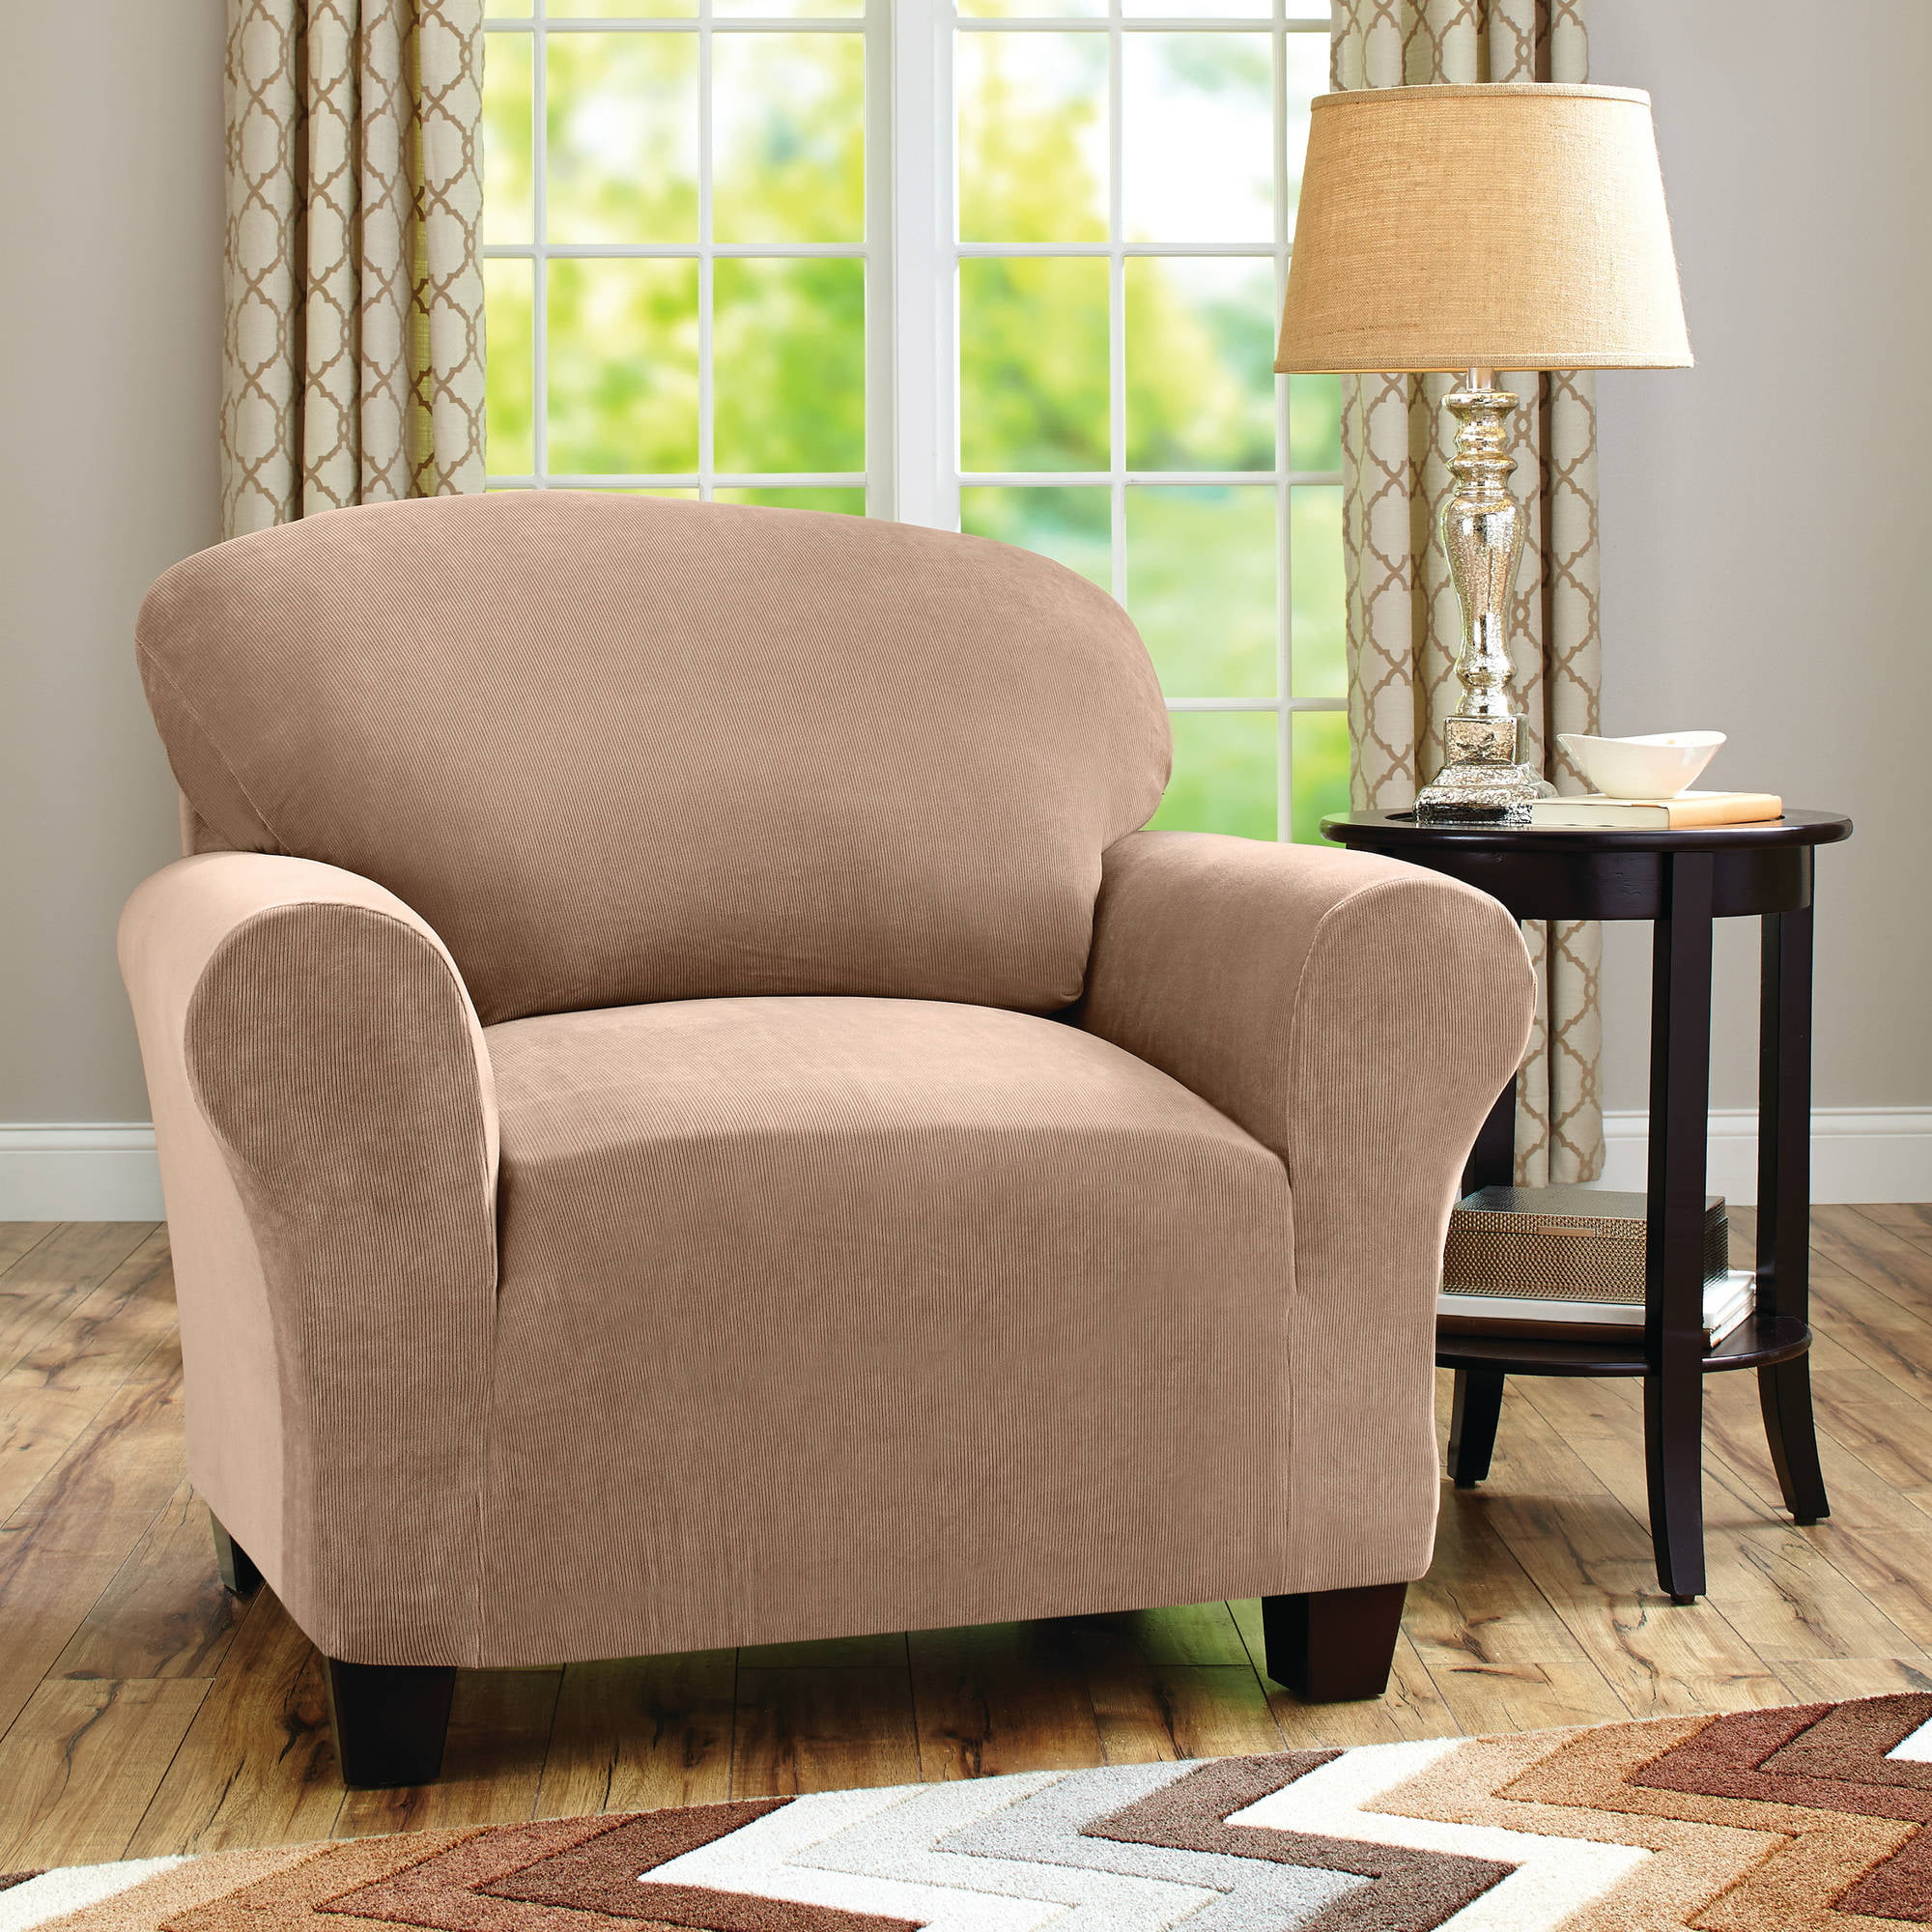 Armchair Slipcovers